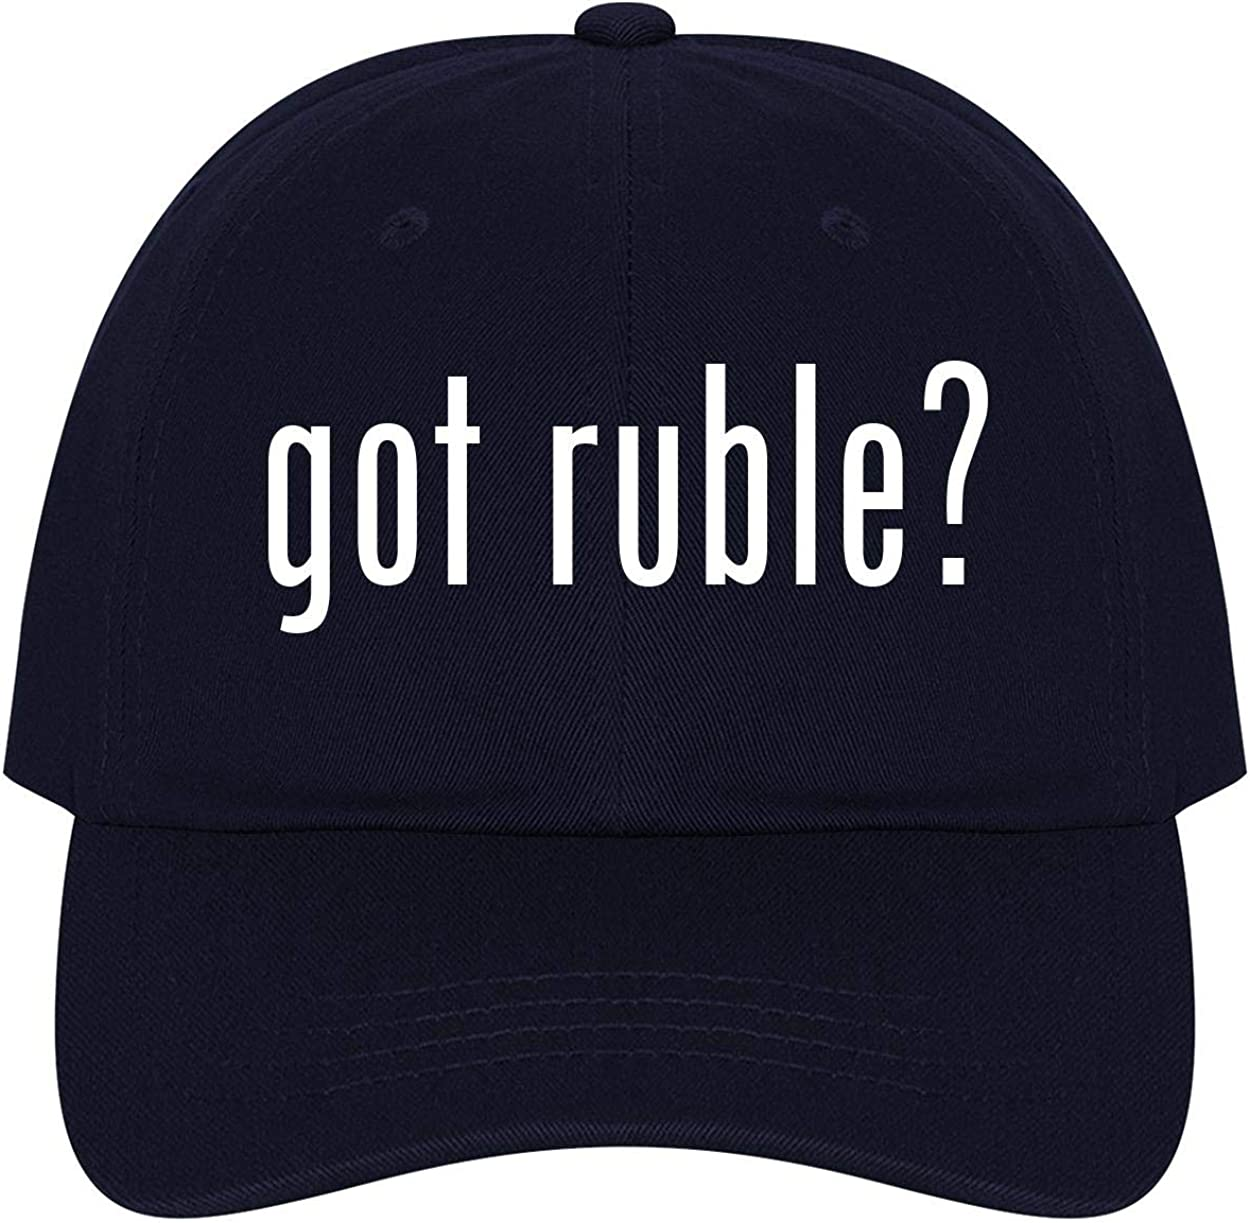 A Nice Comfortable Adjustable Dad Hat Cap The Town Butler got Ruble?